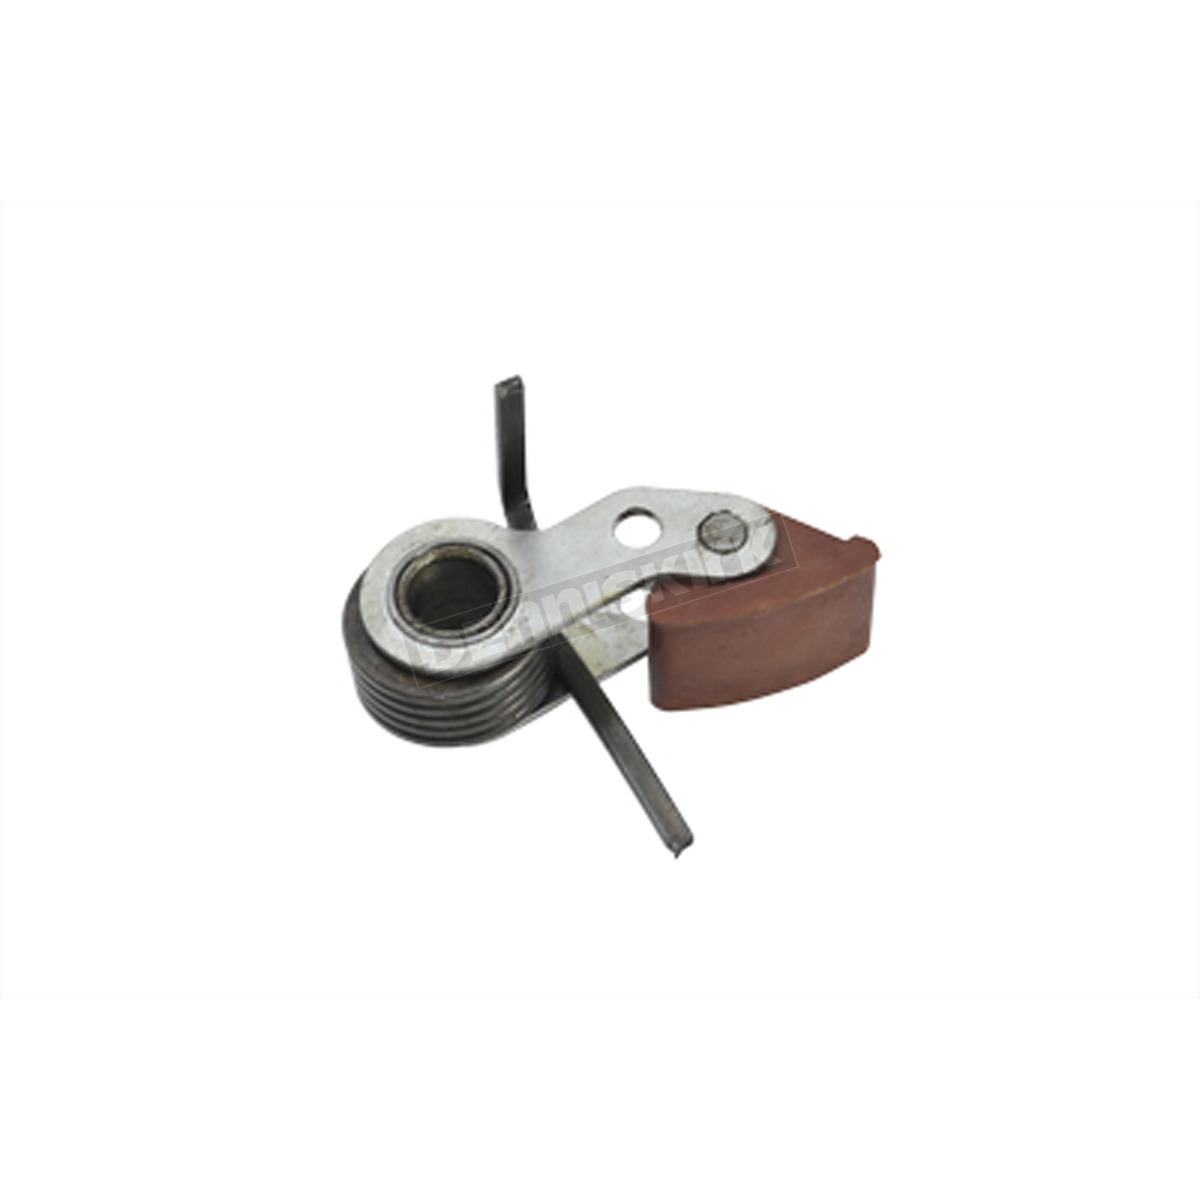 Harley Davidson Cam Chain Tensioner For Sale